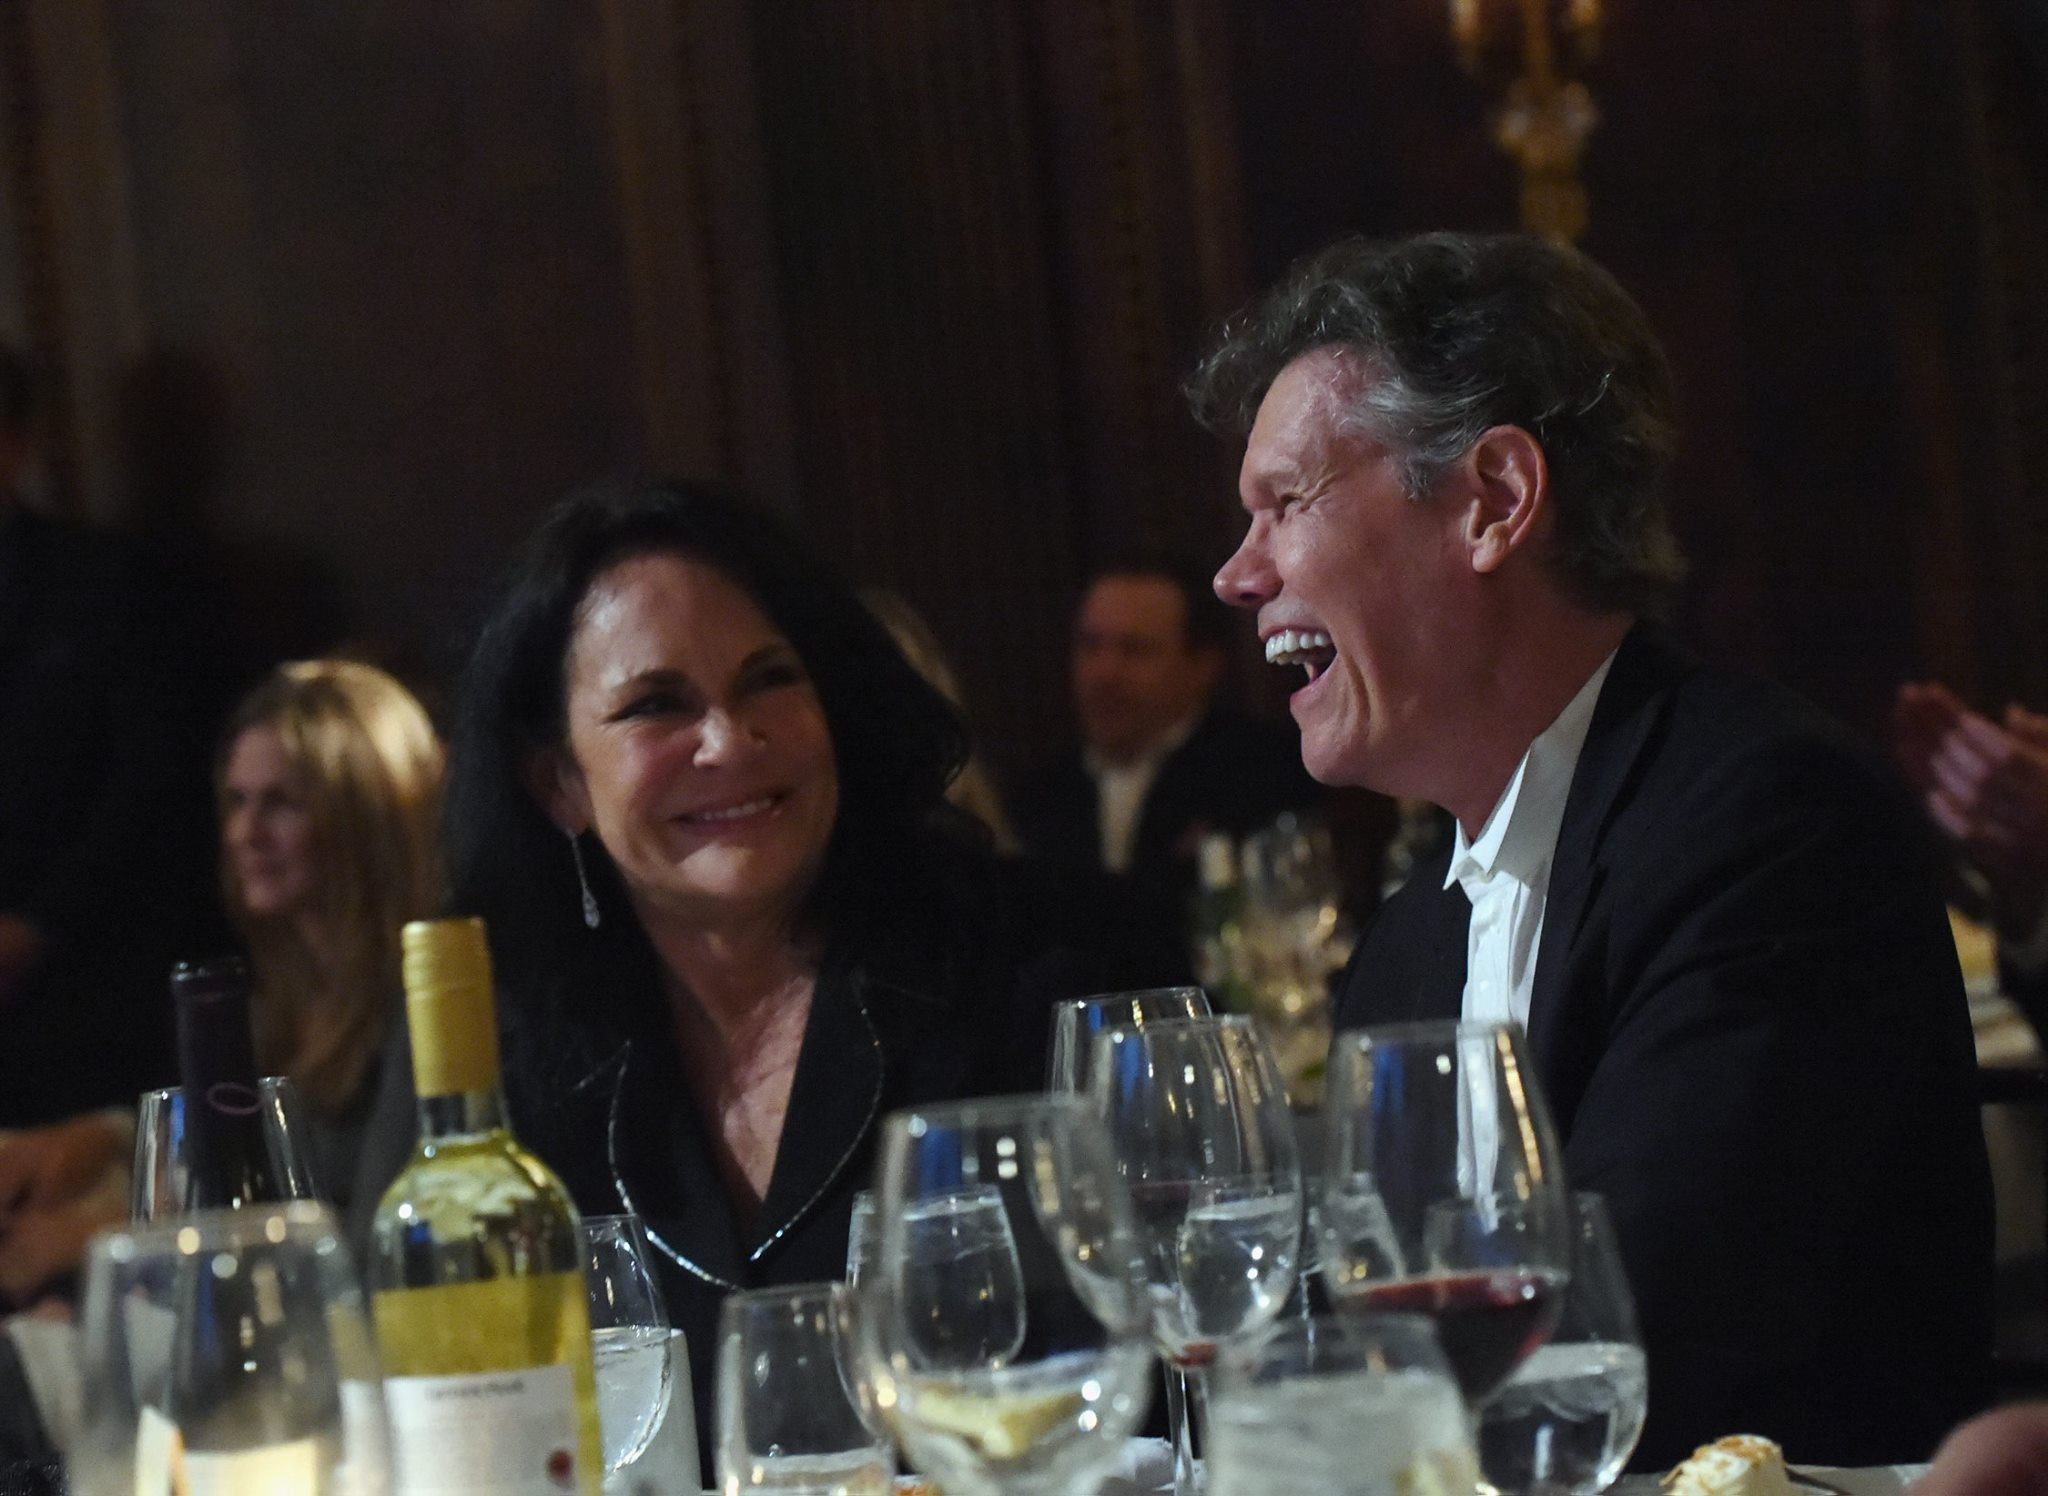 Mary Davis and husband, Honoree Randy Travis